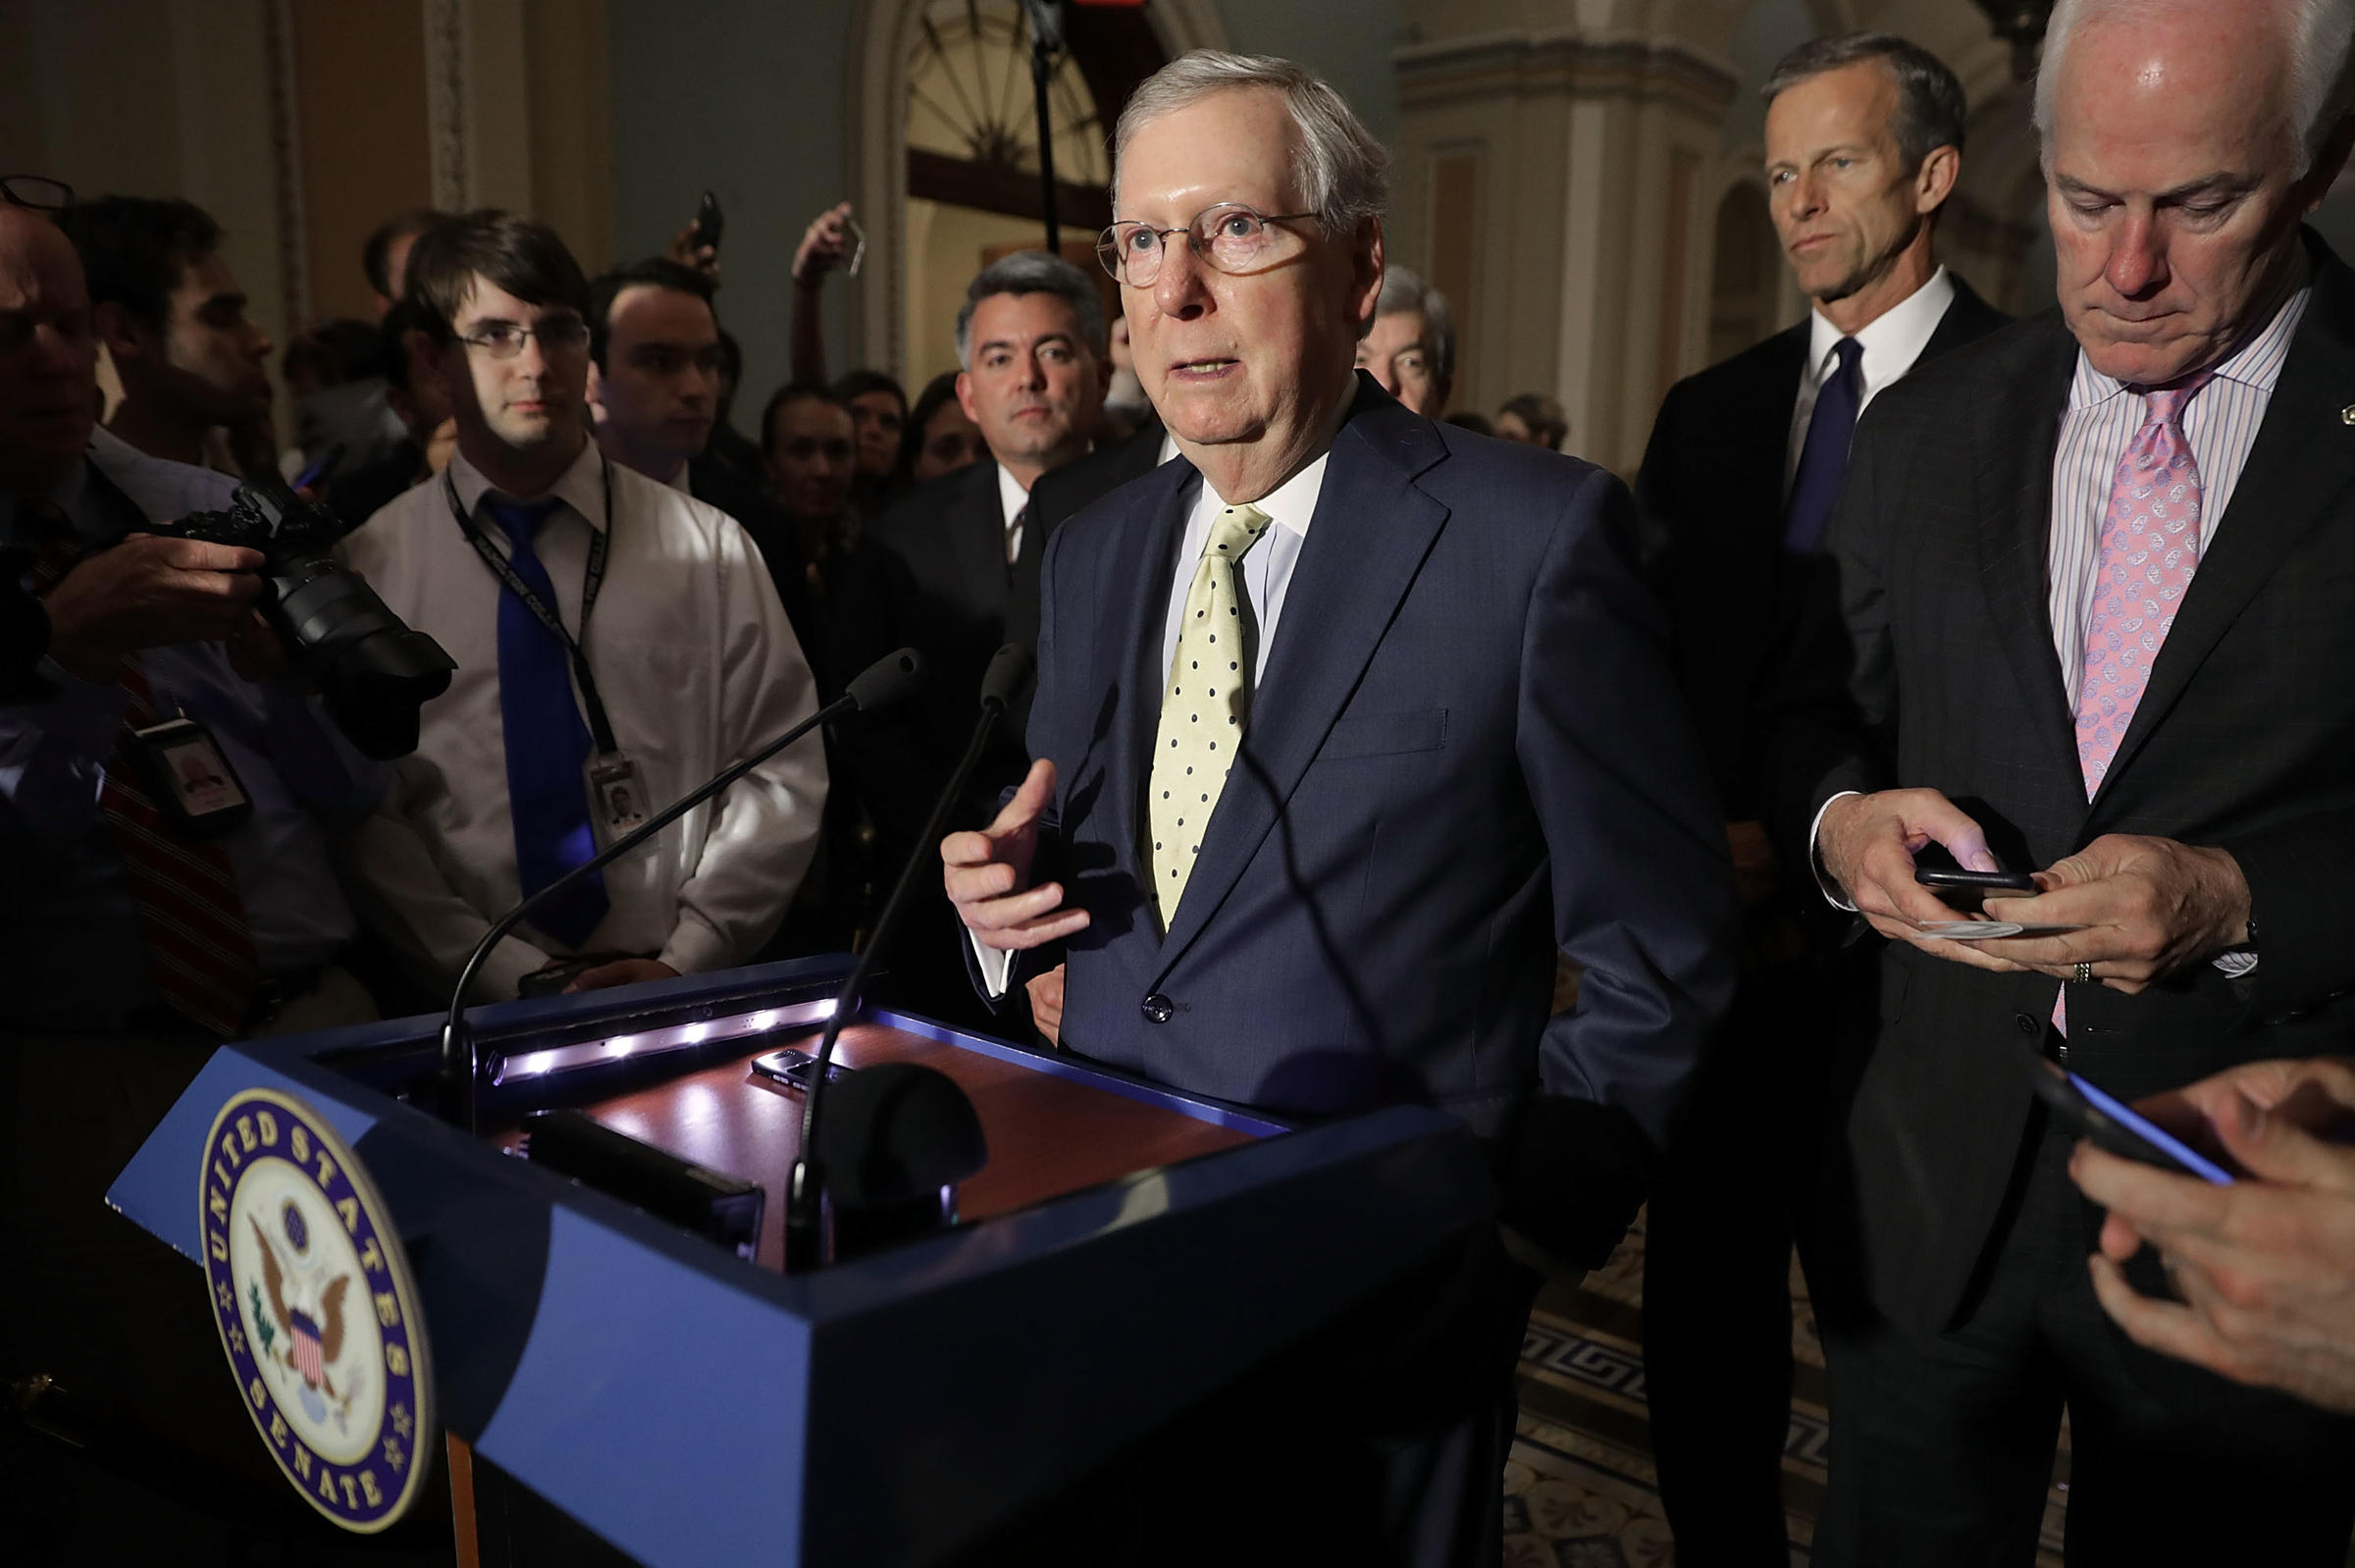 GOP eyes Senate health care vote next week, amid grumbling